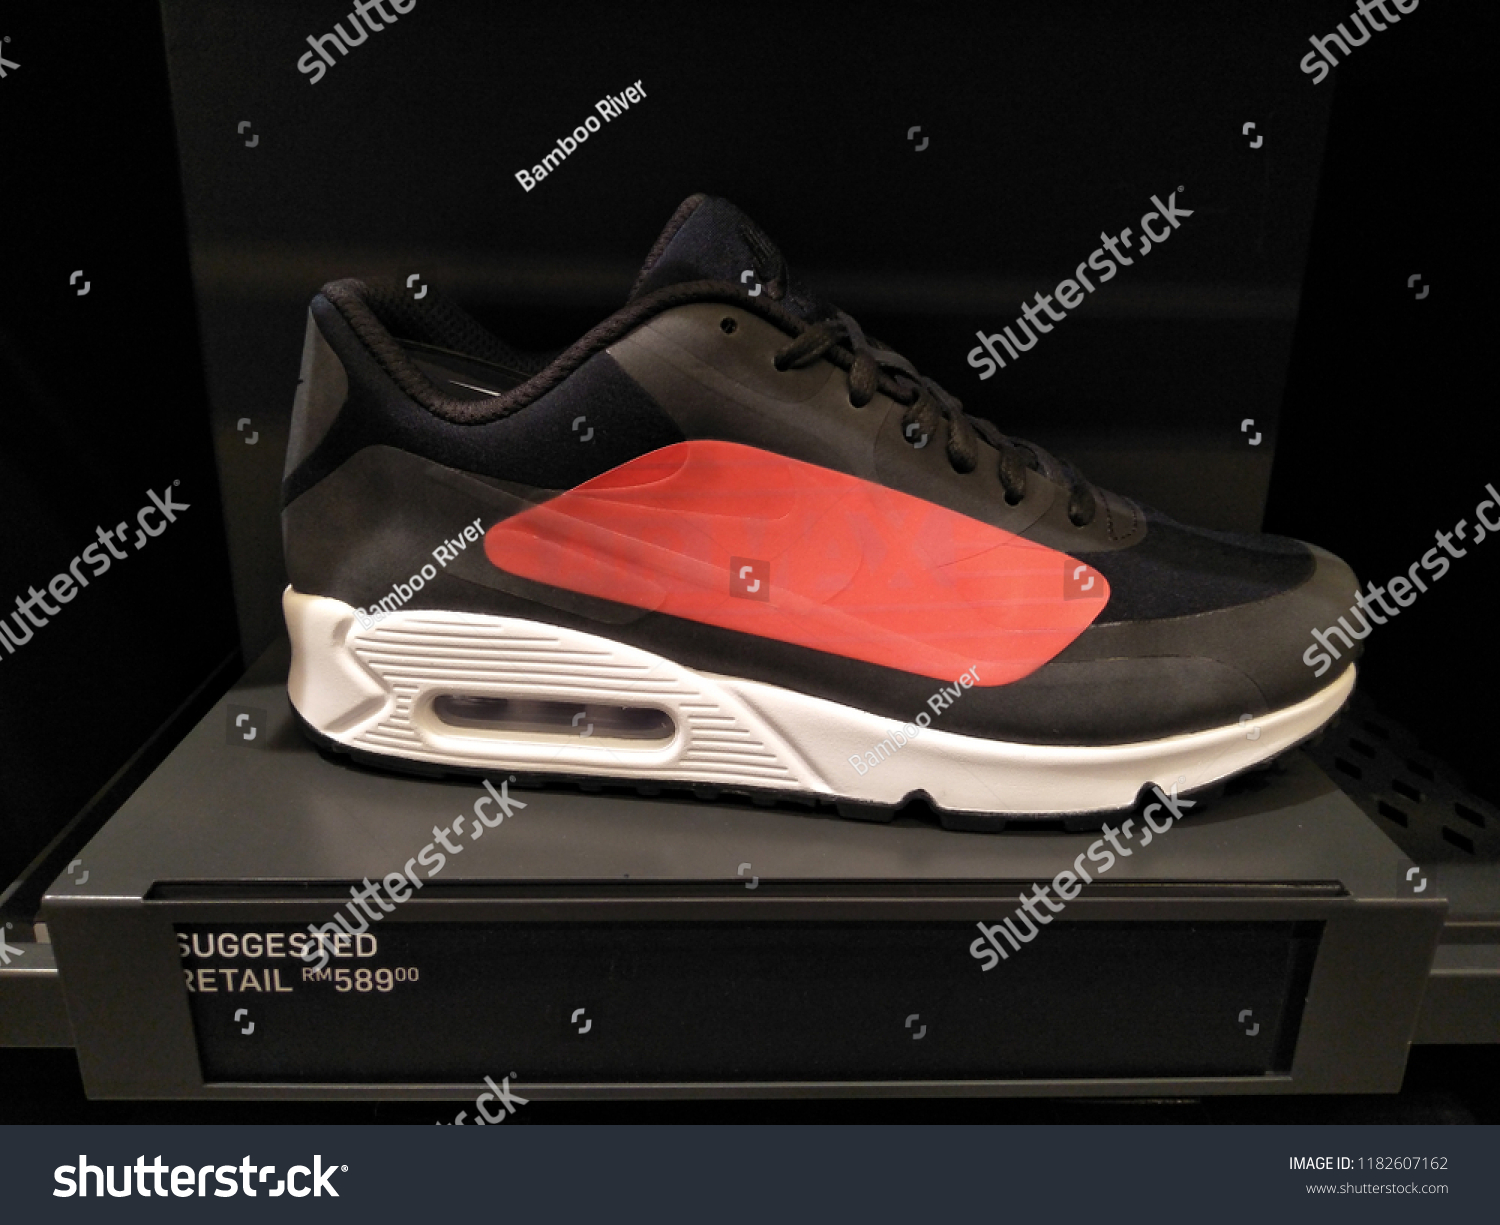 reputable site edb1b 070da stock-photo-genting-highlands-malaysia-september-nike-shoes-for-sale-nike -is-one-of-famous-sports-1182607162.jpg